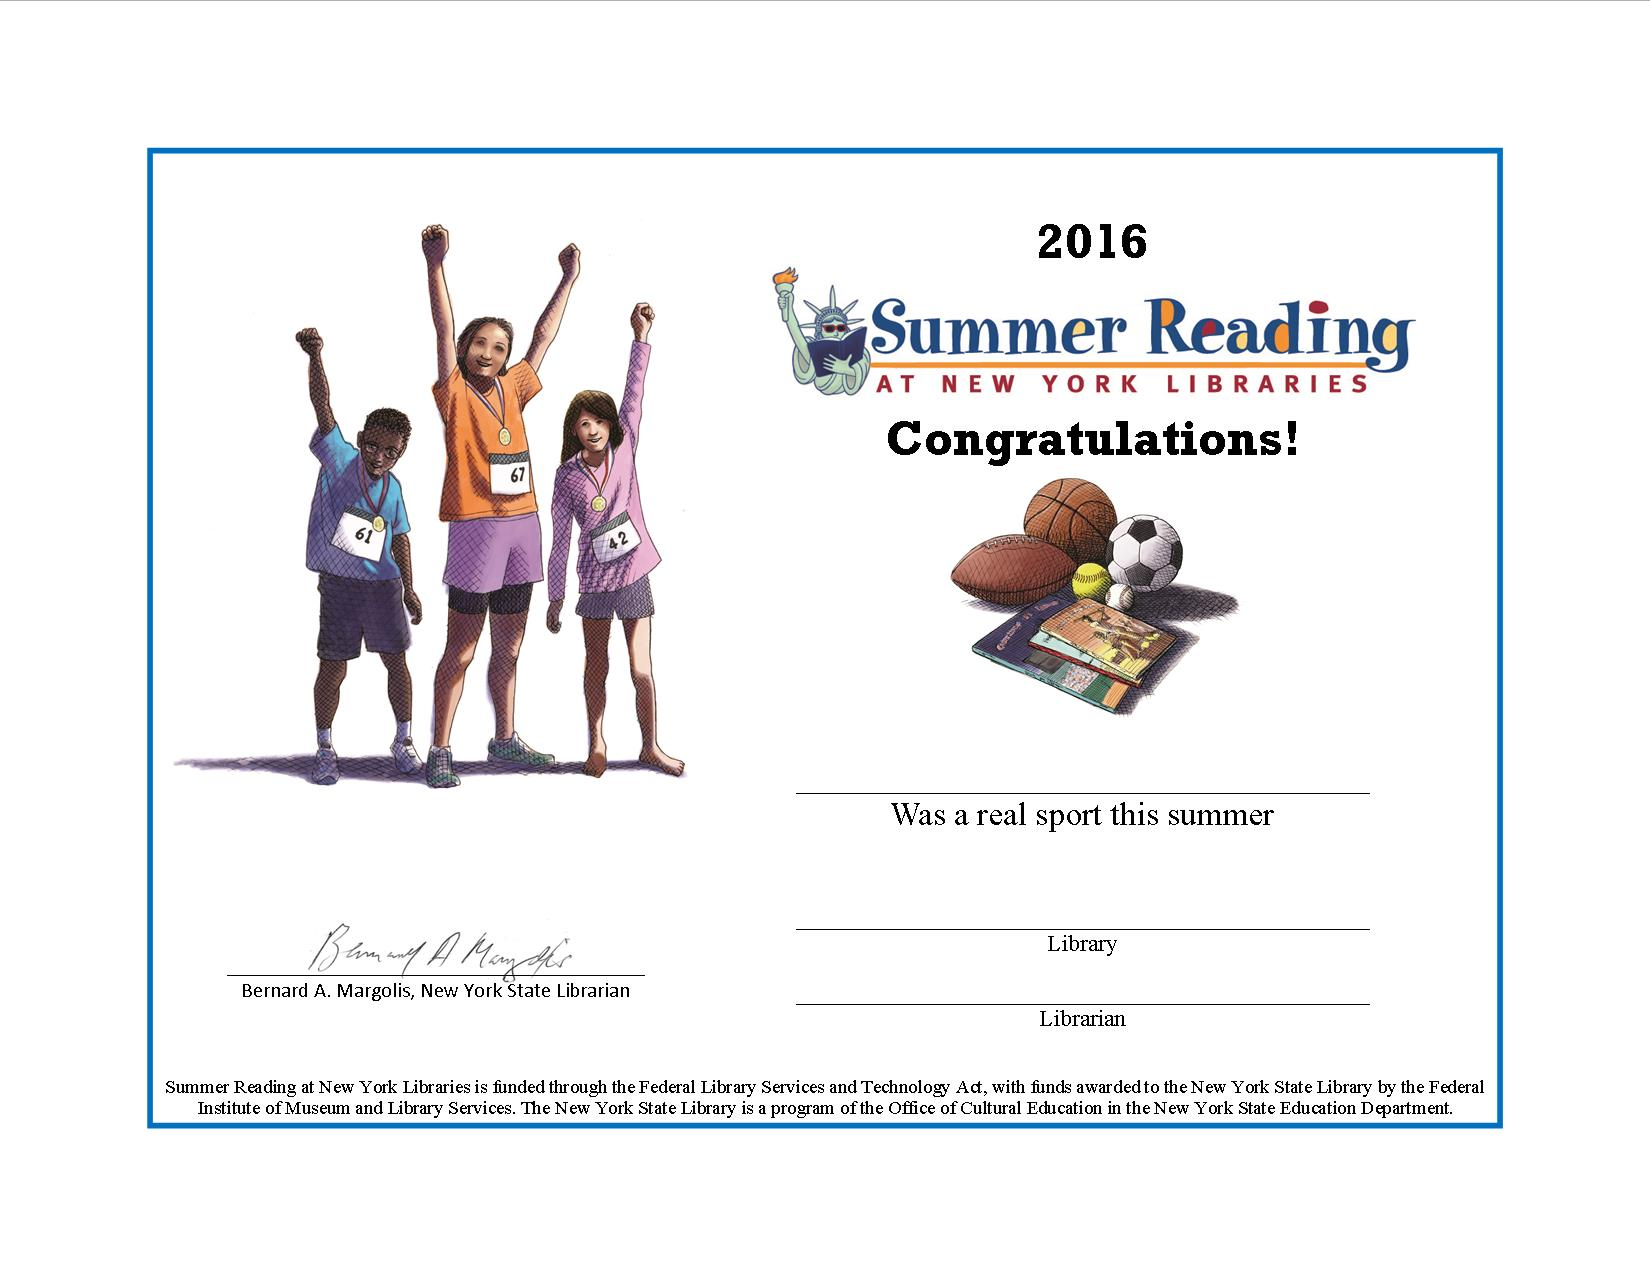 Worksheet Online Reading Program worksheet online reading program wosenly free programs mikyu summer reader registrationsummer at new york